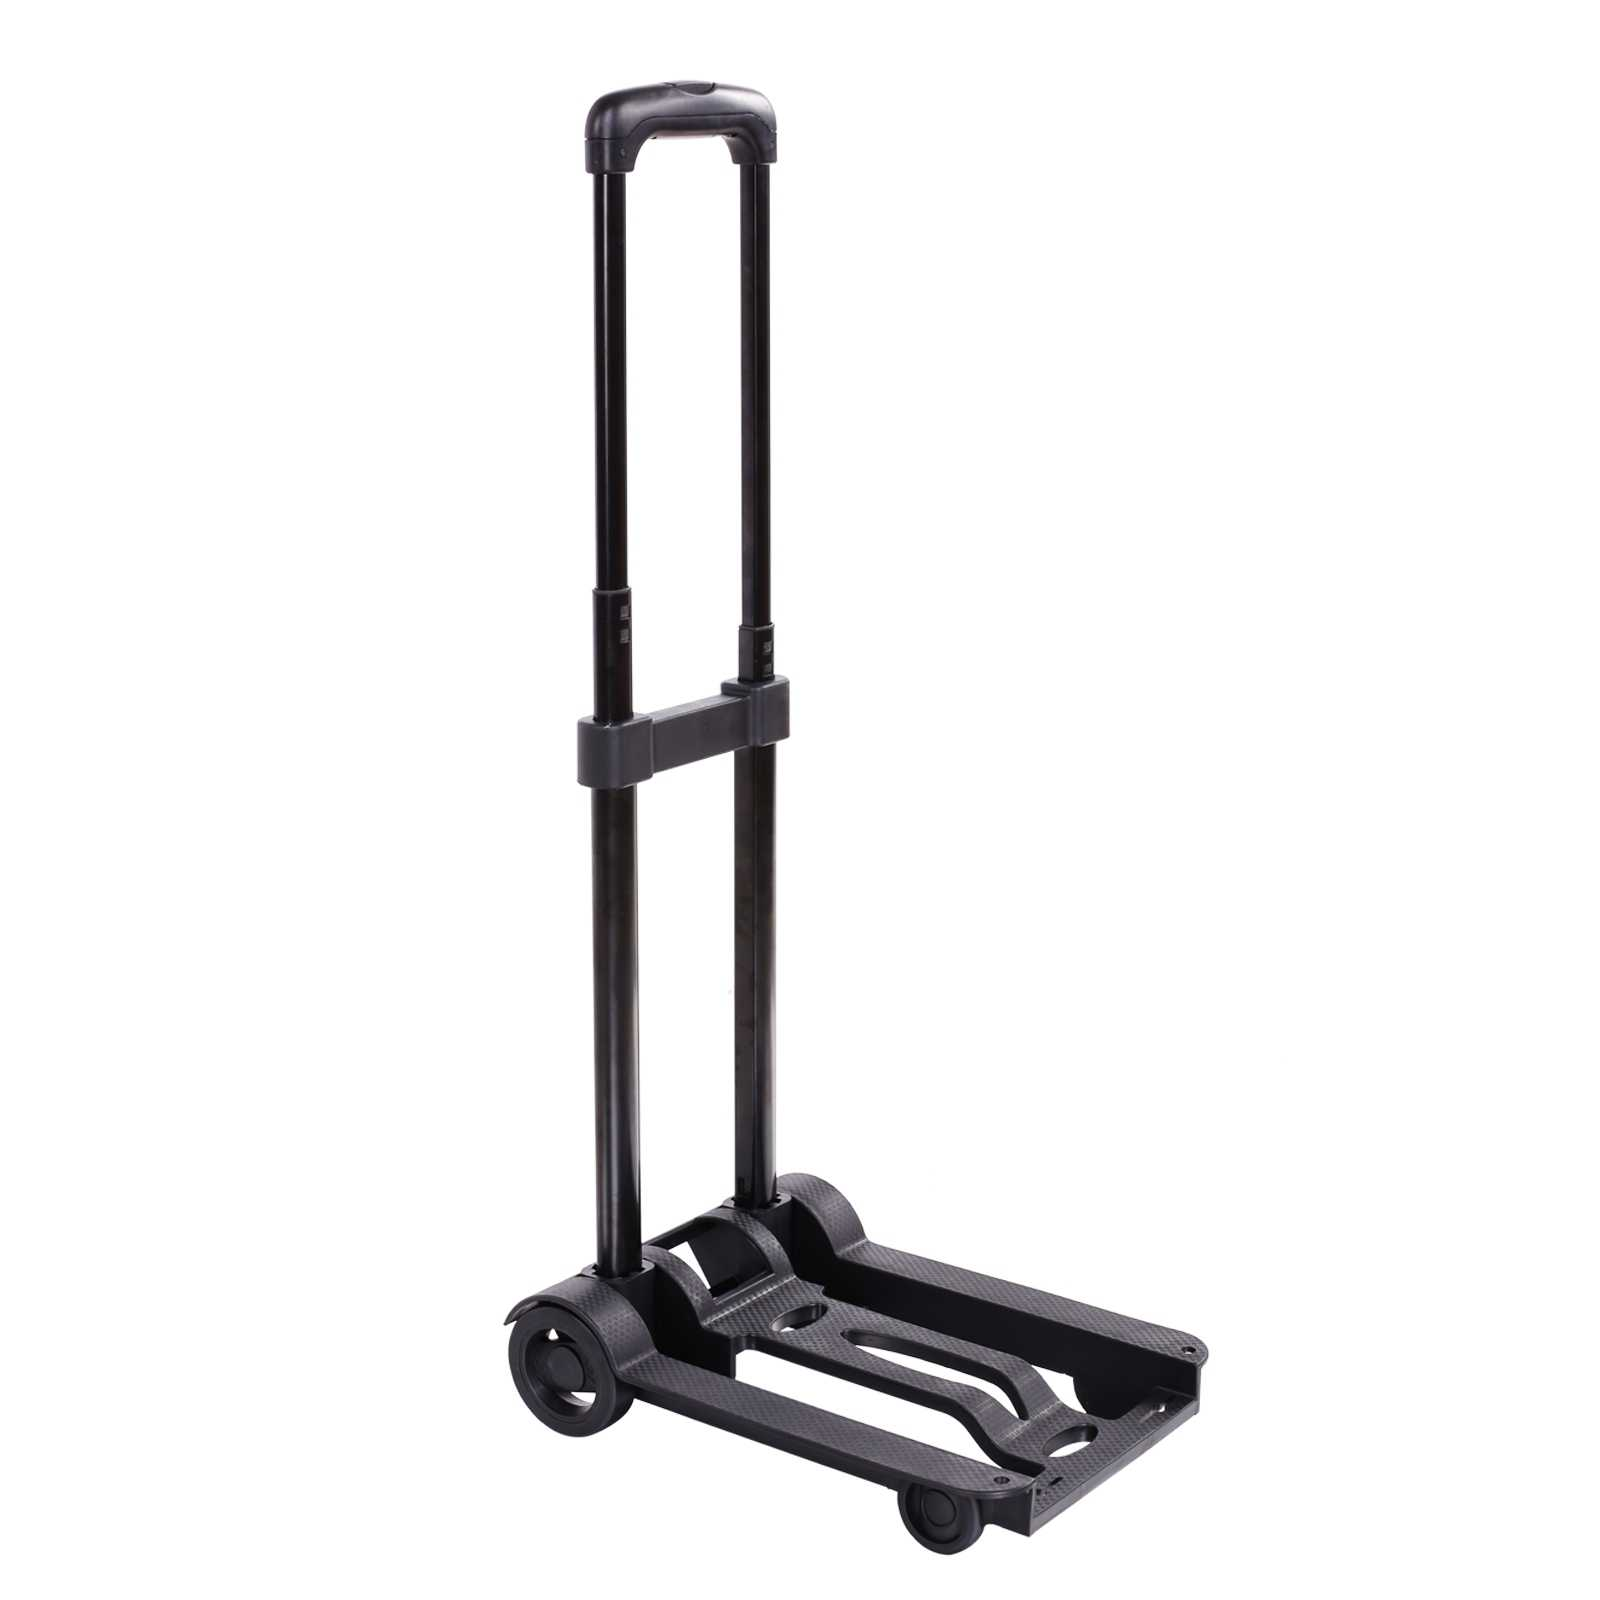 Folding Push Truck Trolley Luggage Flatbed Dolly Cart Portable Hand Collapsible Truck